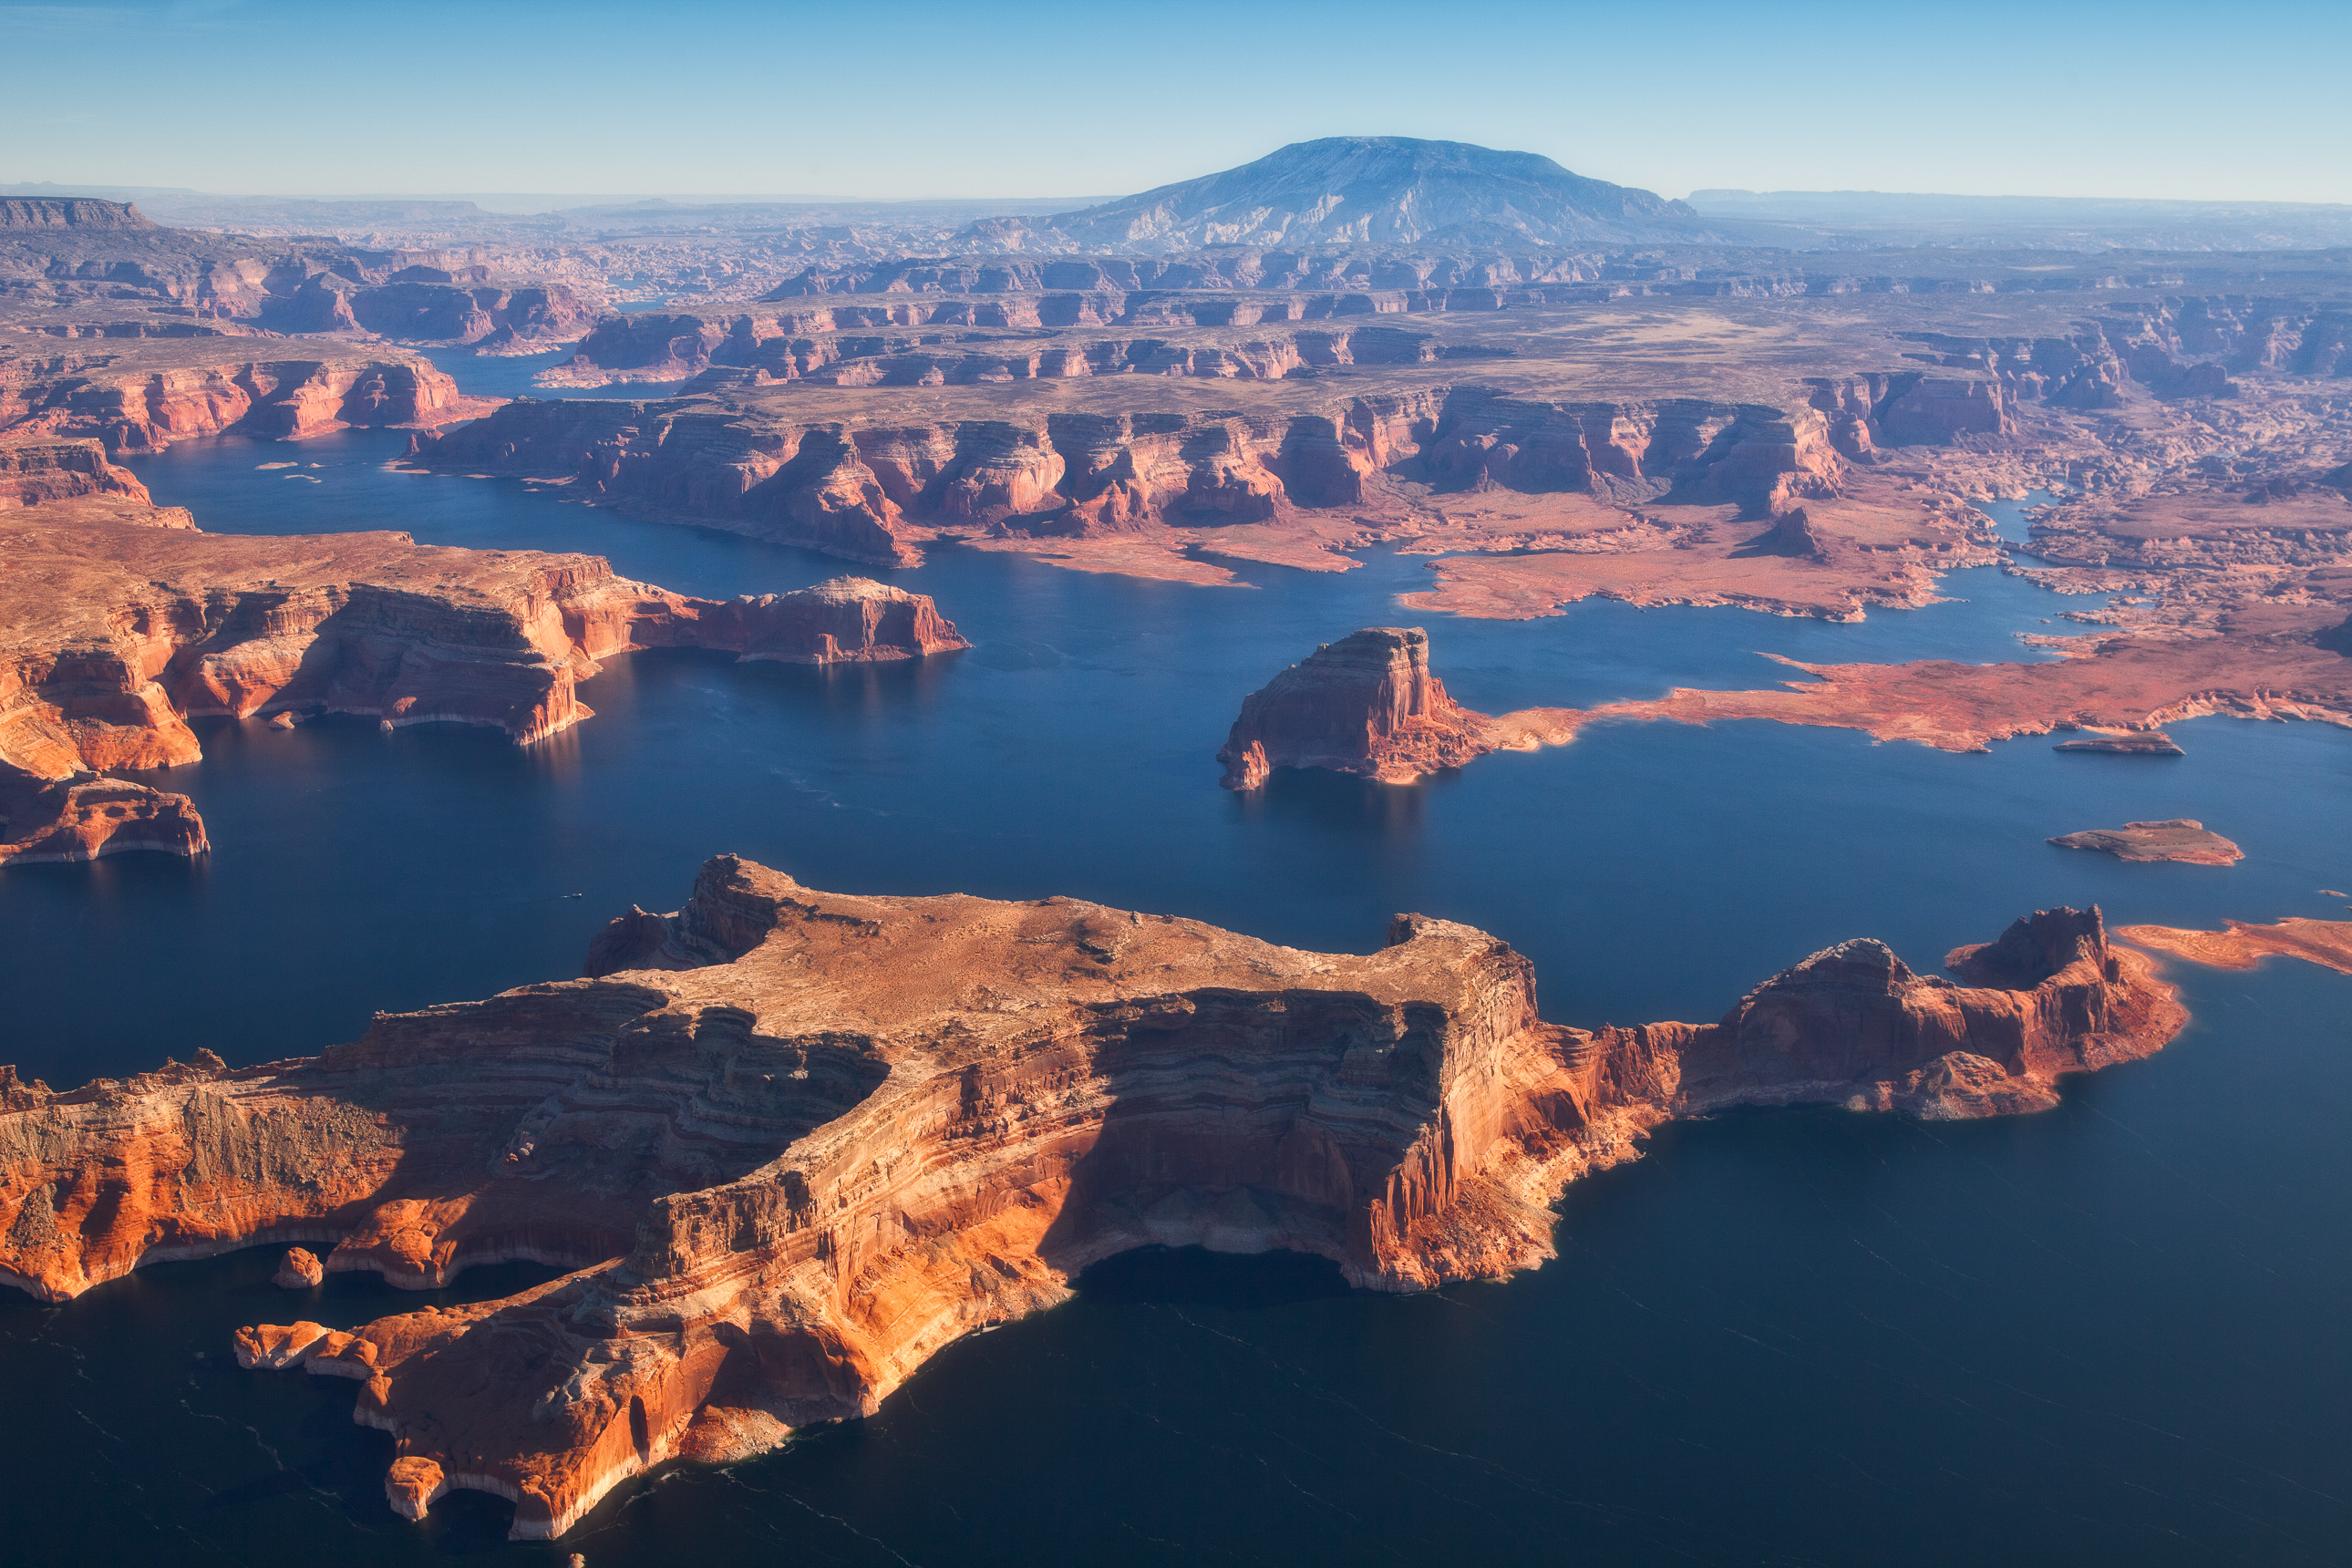 Lake Powell from the sky